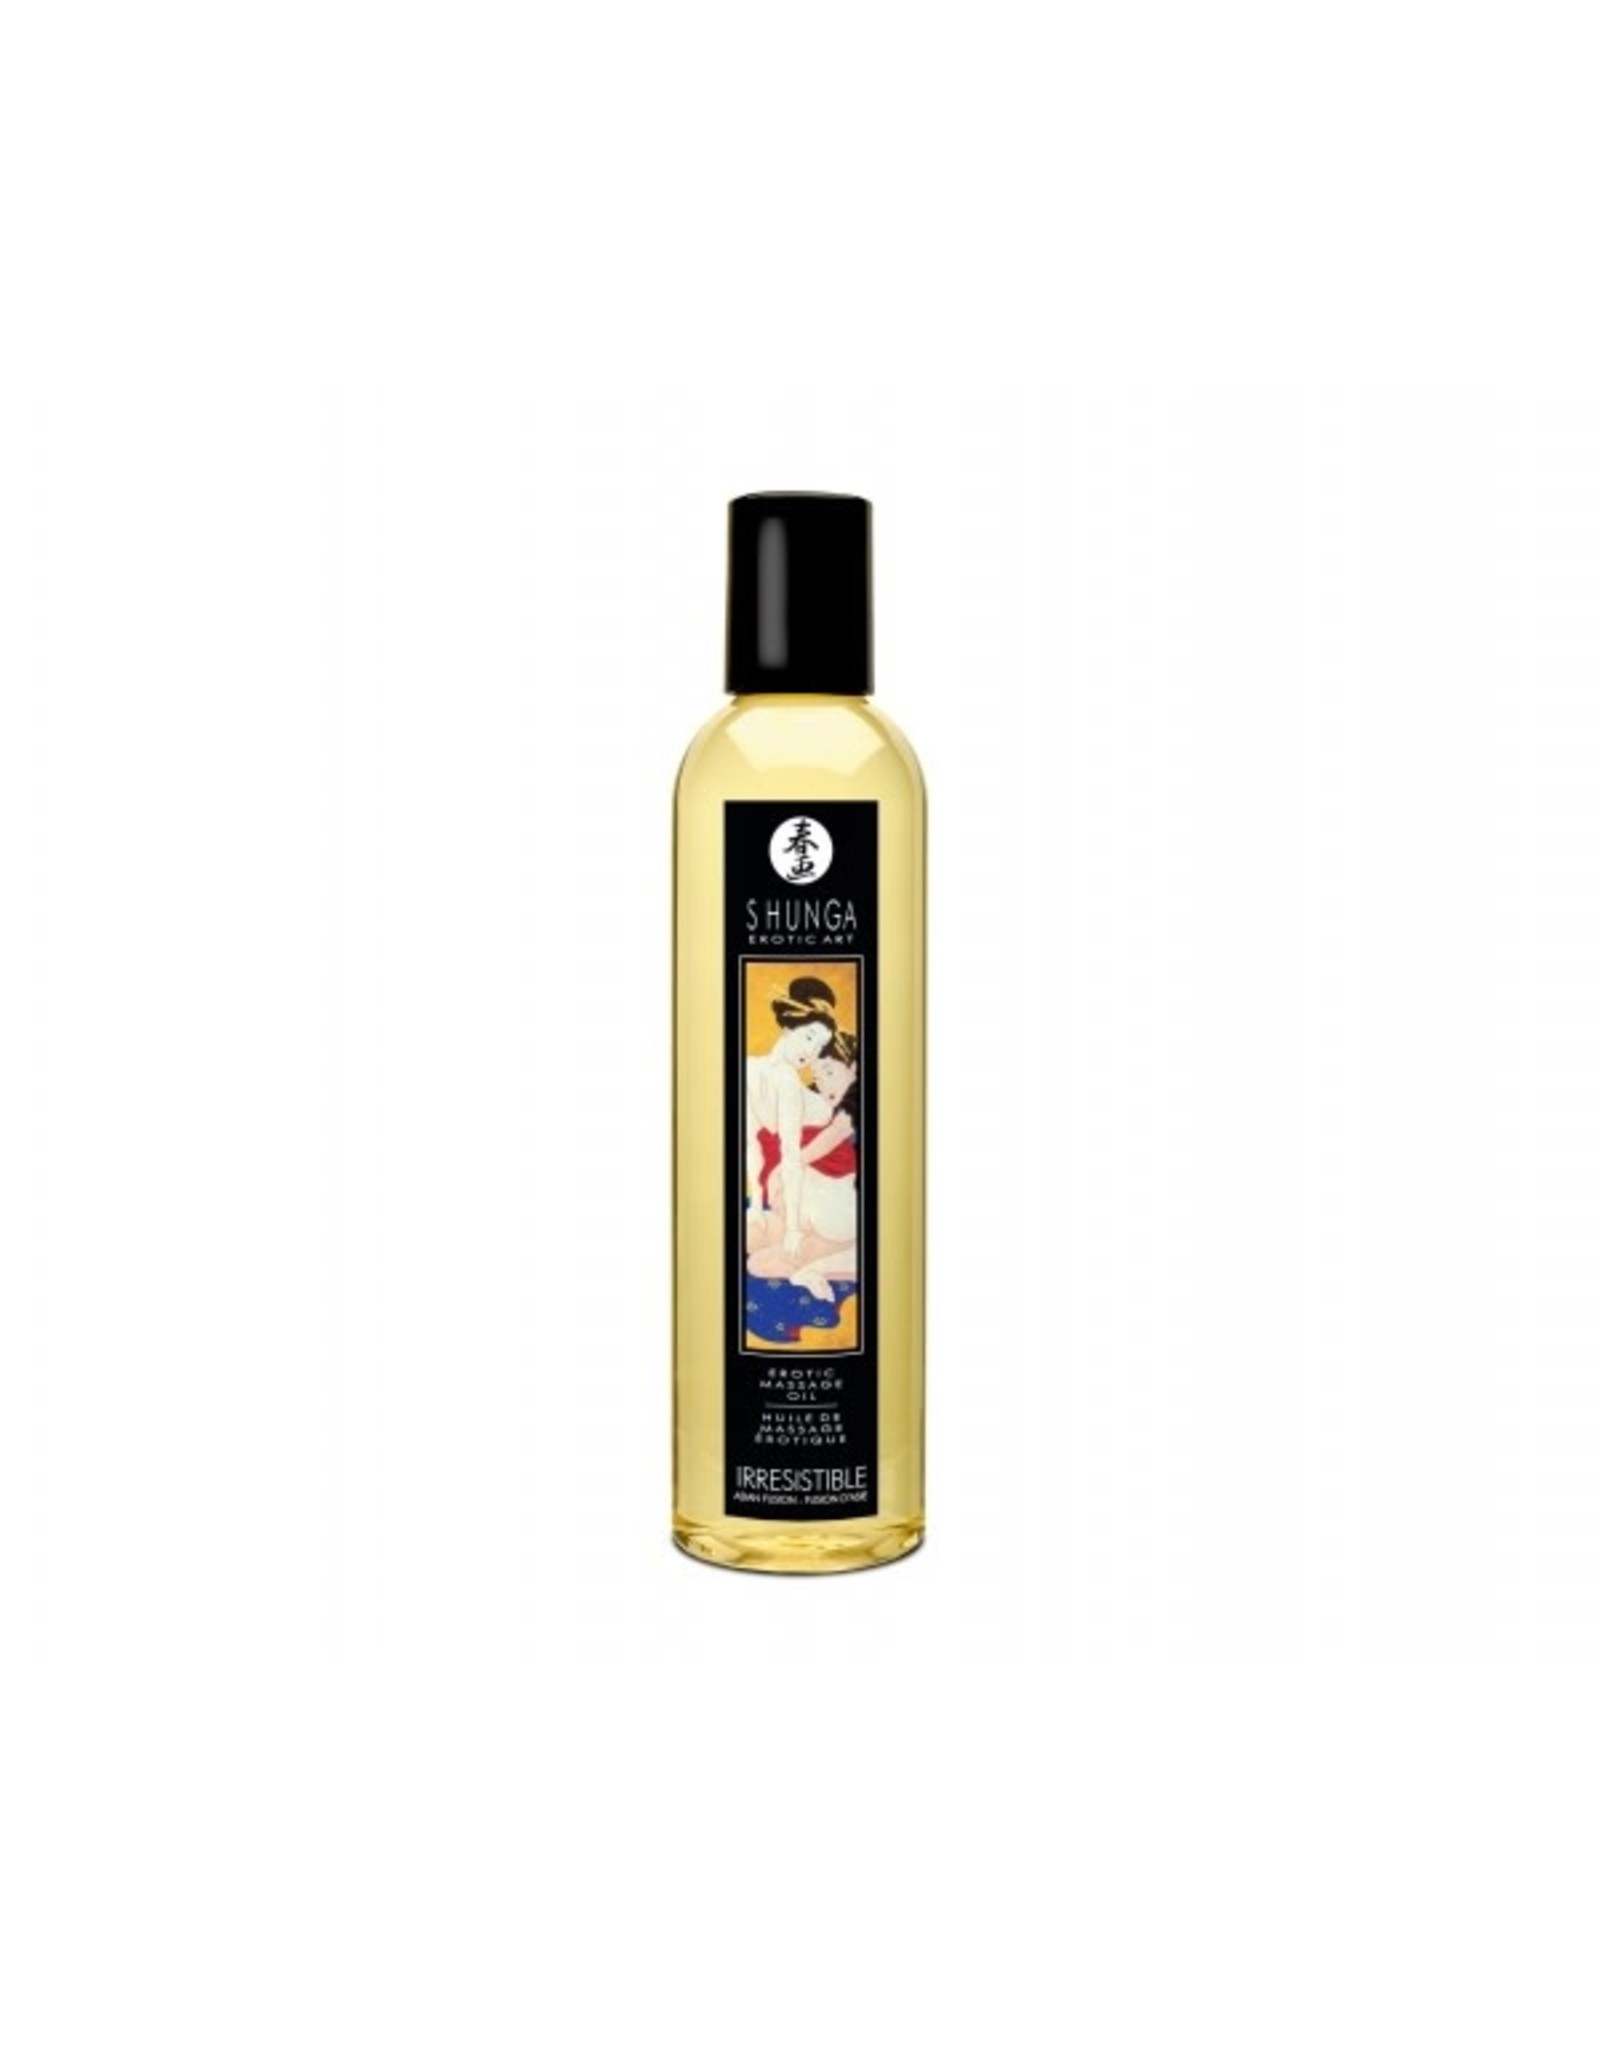 SHUNGA - EROTIC MASSAGE OIL - IRRESISTIBLE (ASIAN FUSION) 8oz